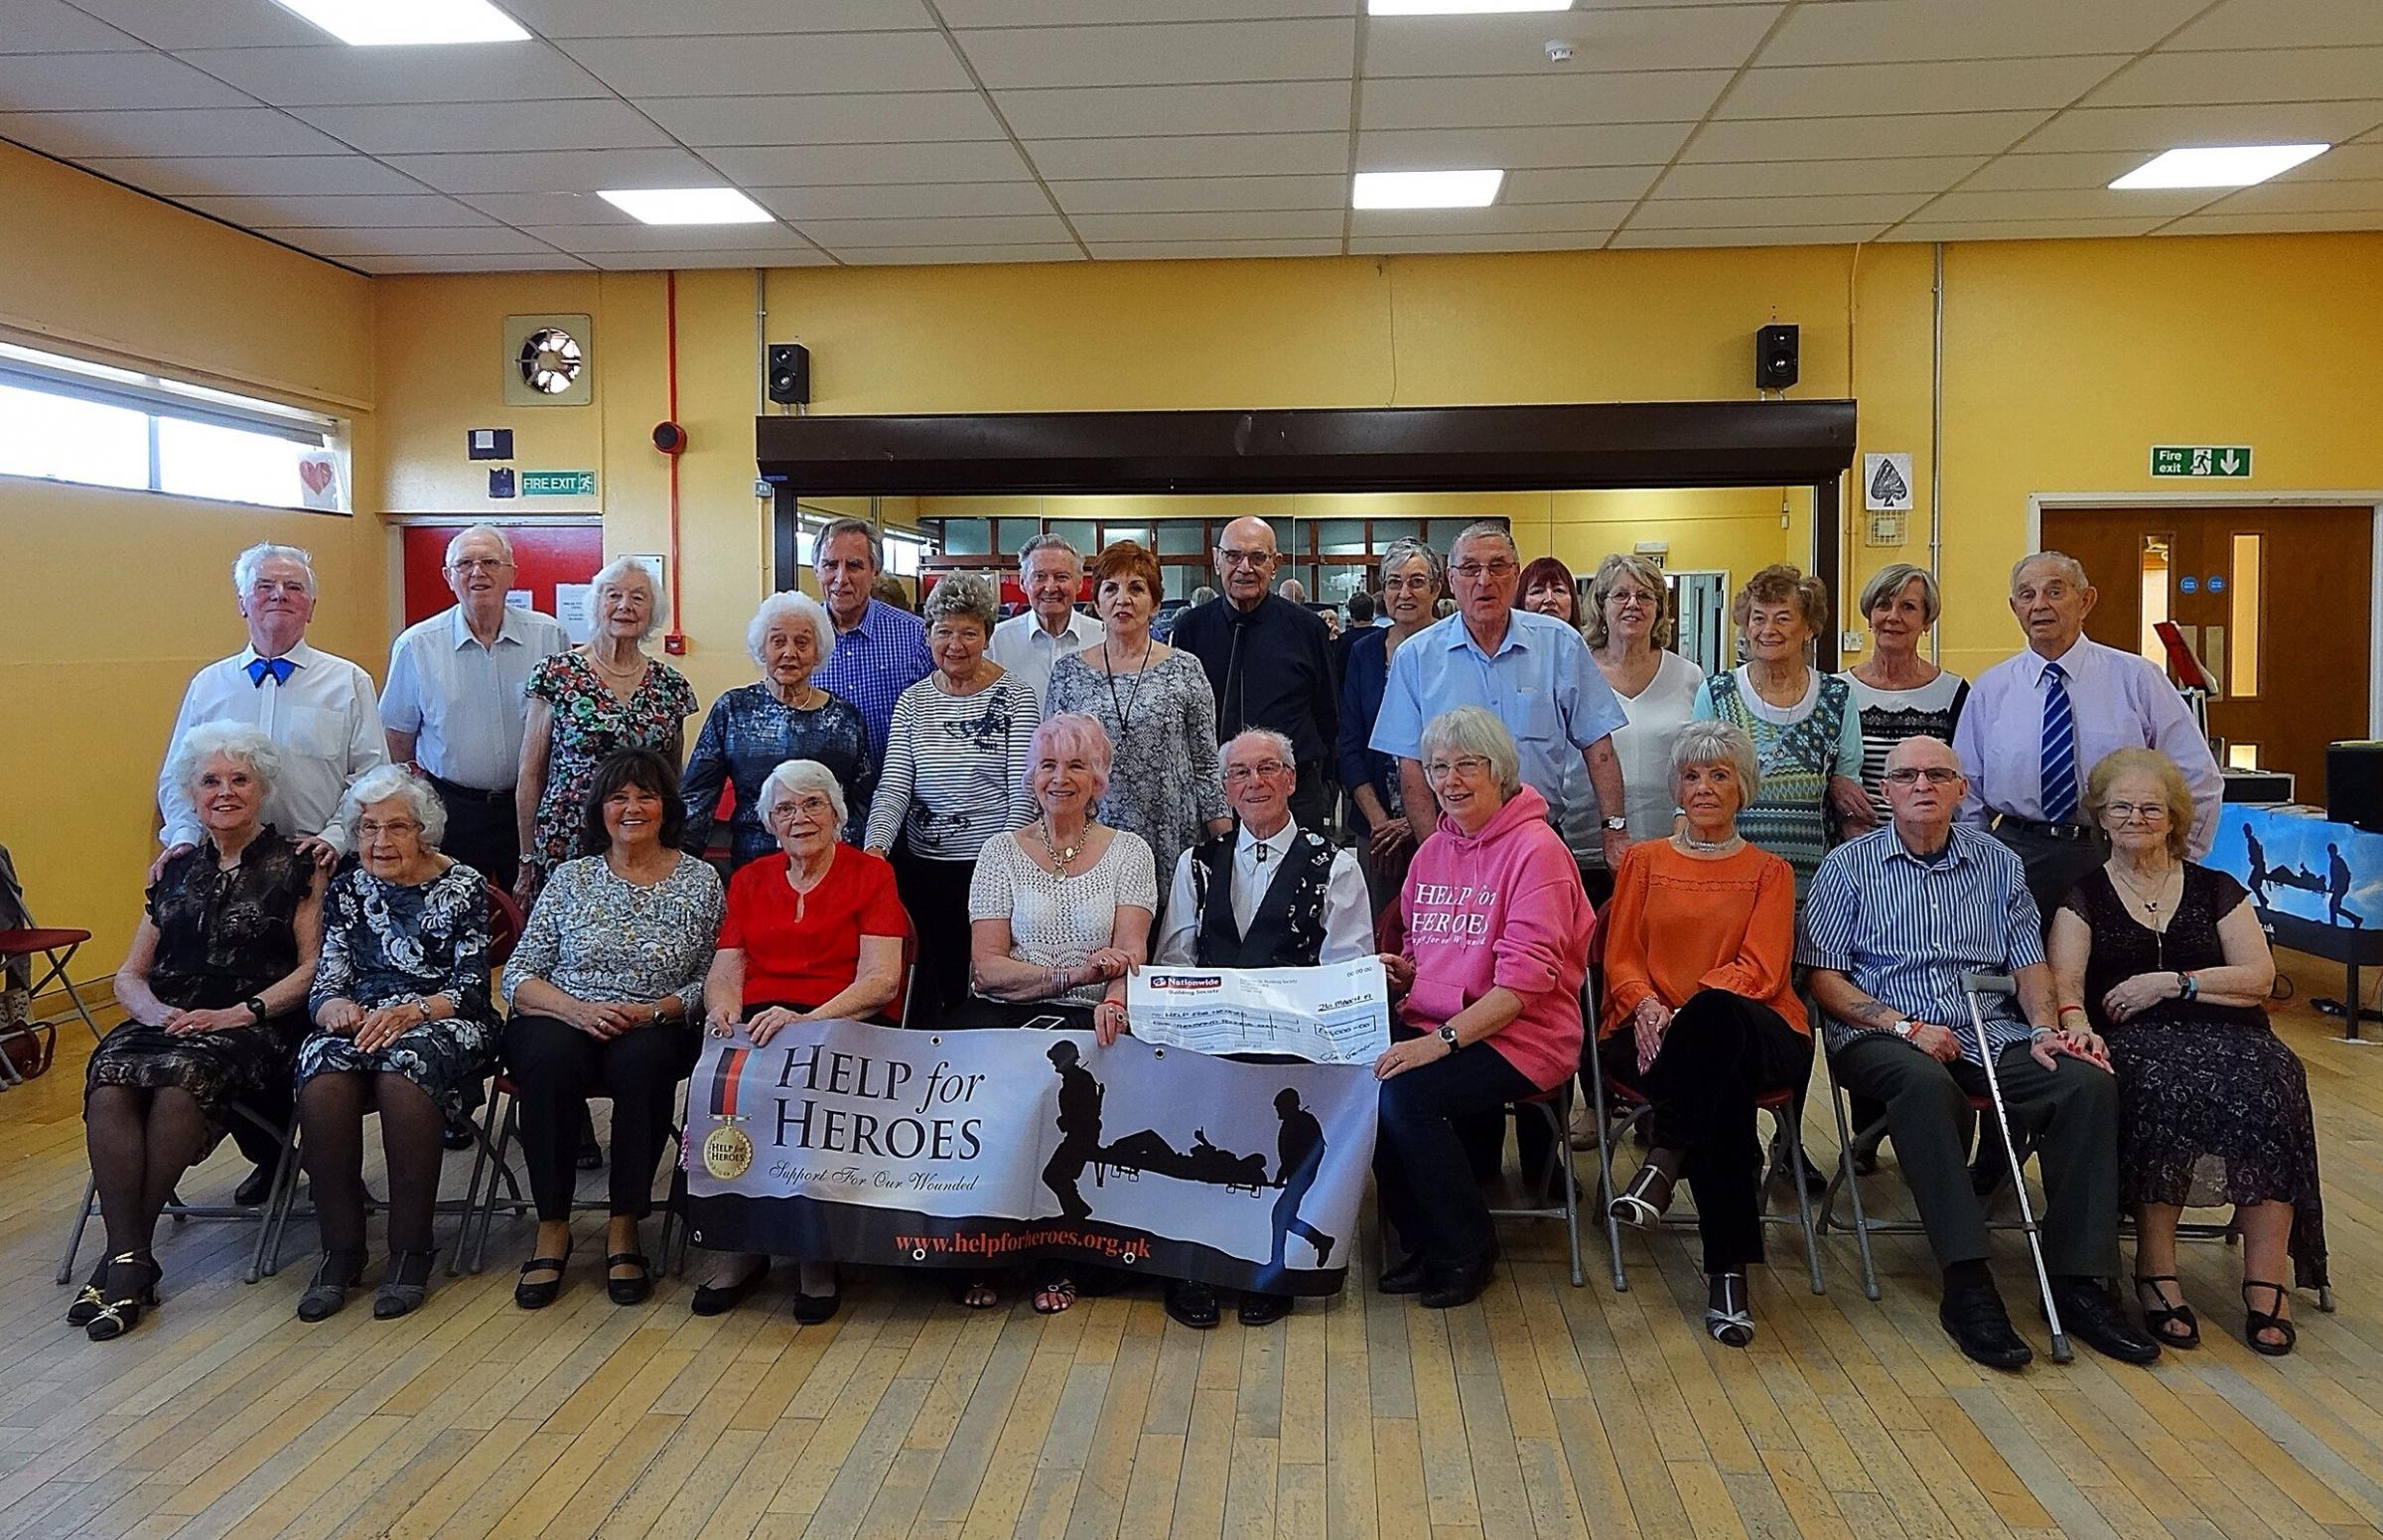 Members at Denton Dancing & Social Club continue to do their bit for charity